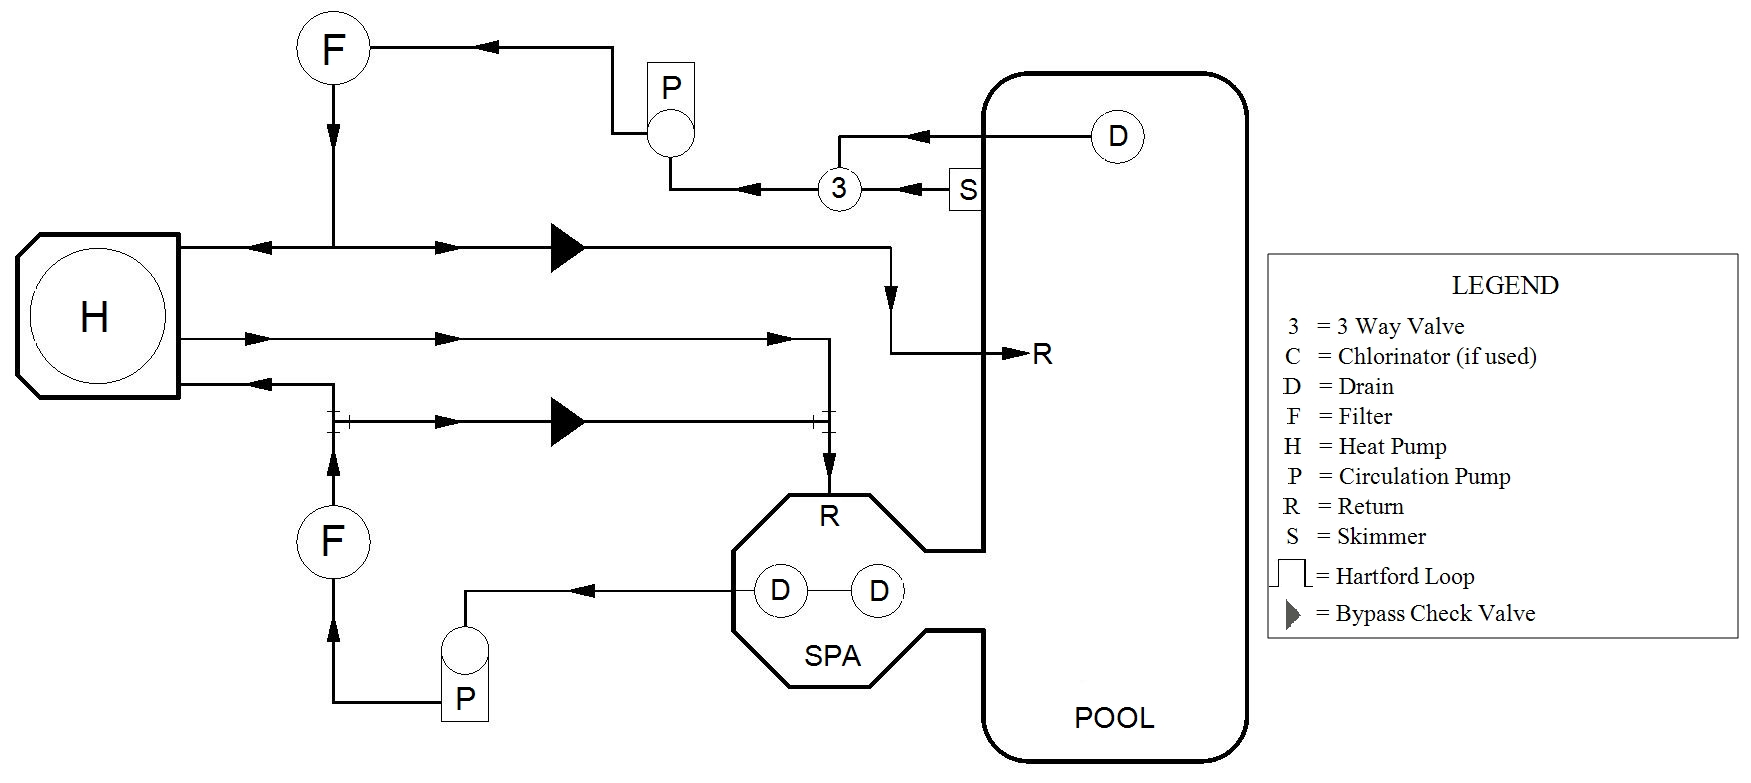 hight resolution of jacuzzi piping diagram electrical wiring diagram jacuzzi piping diagram